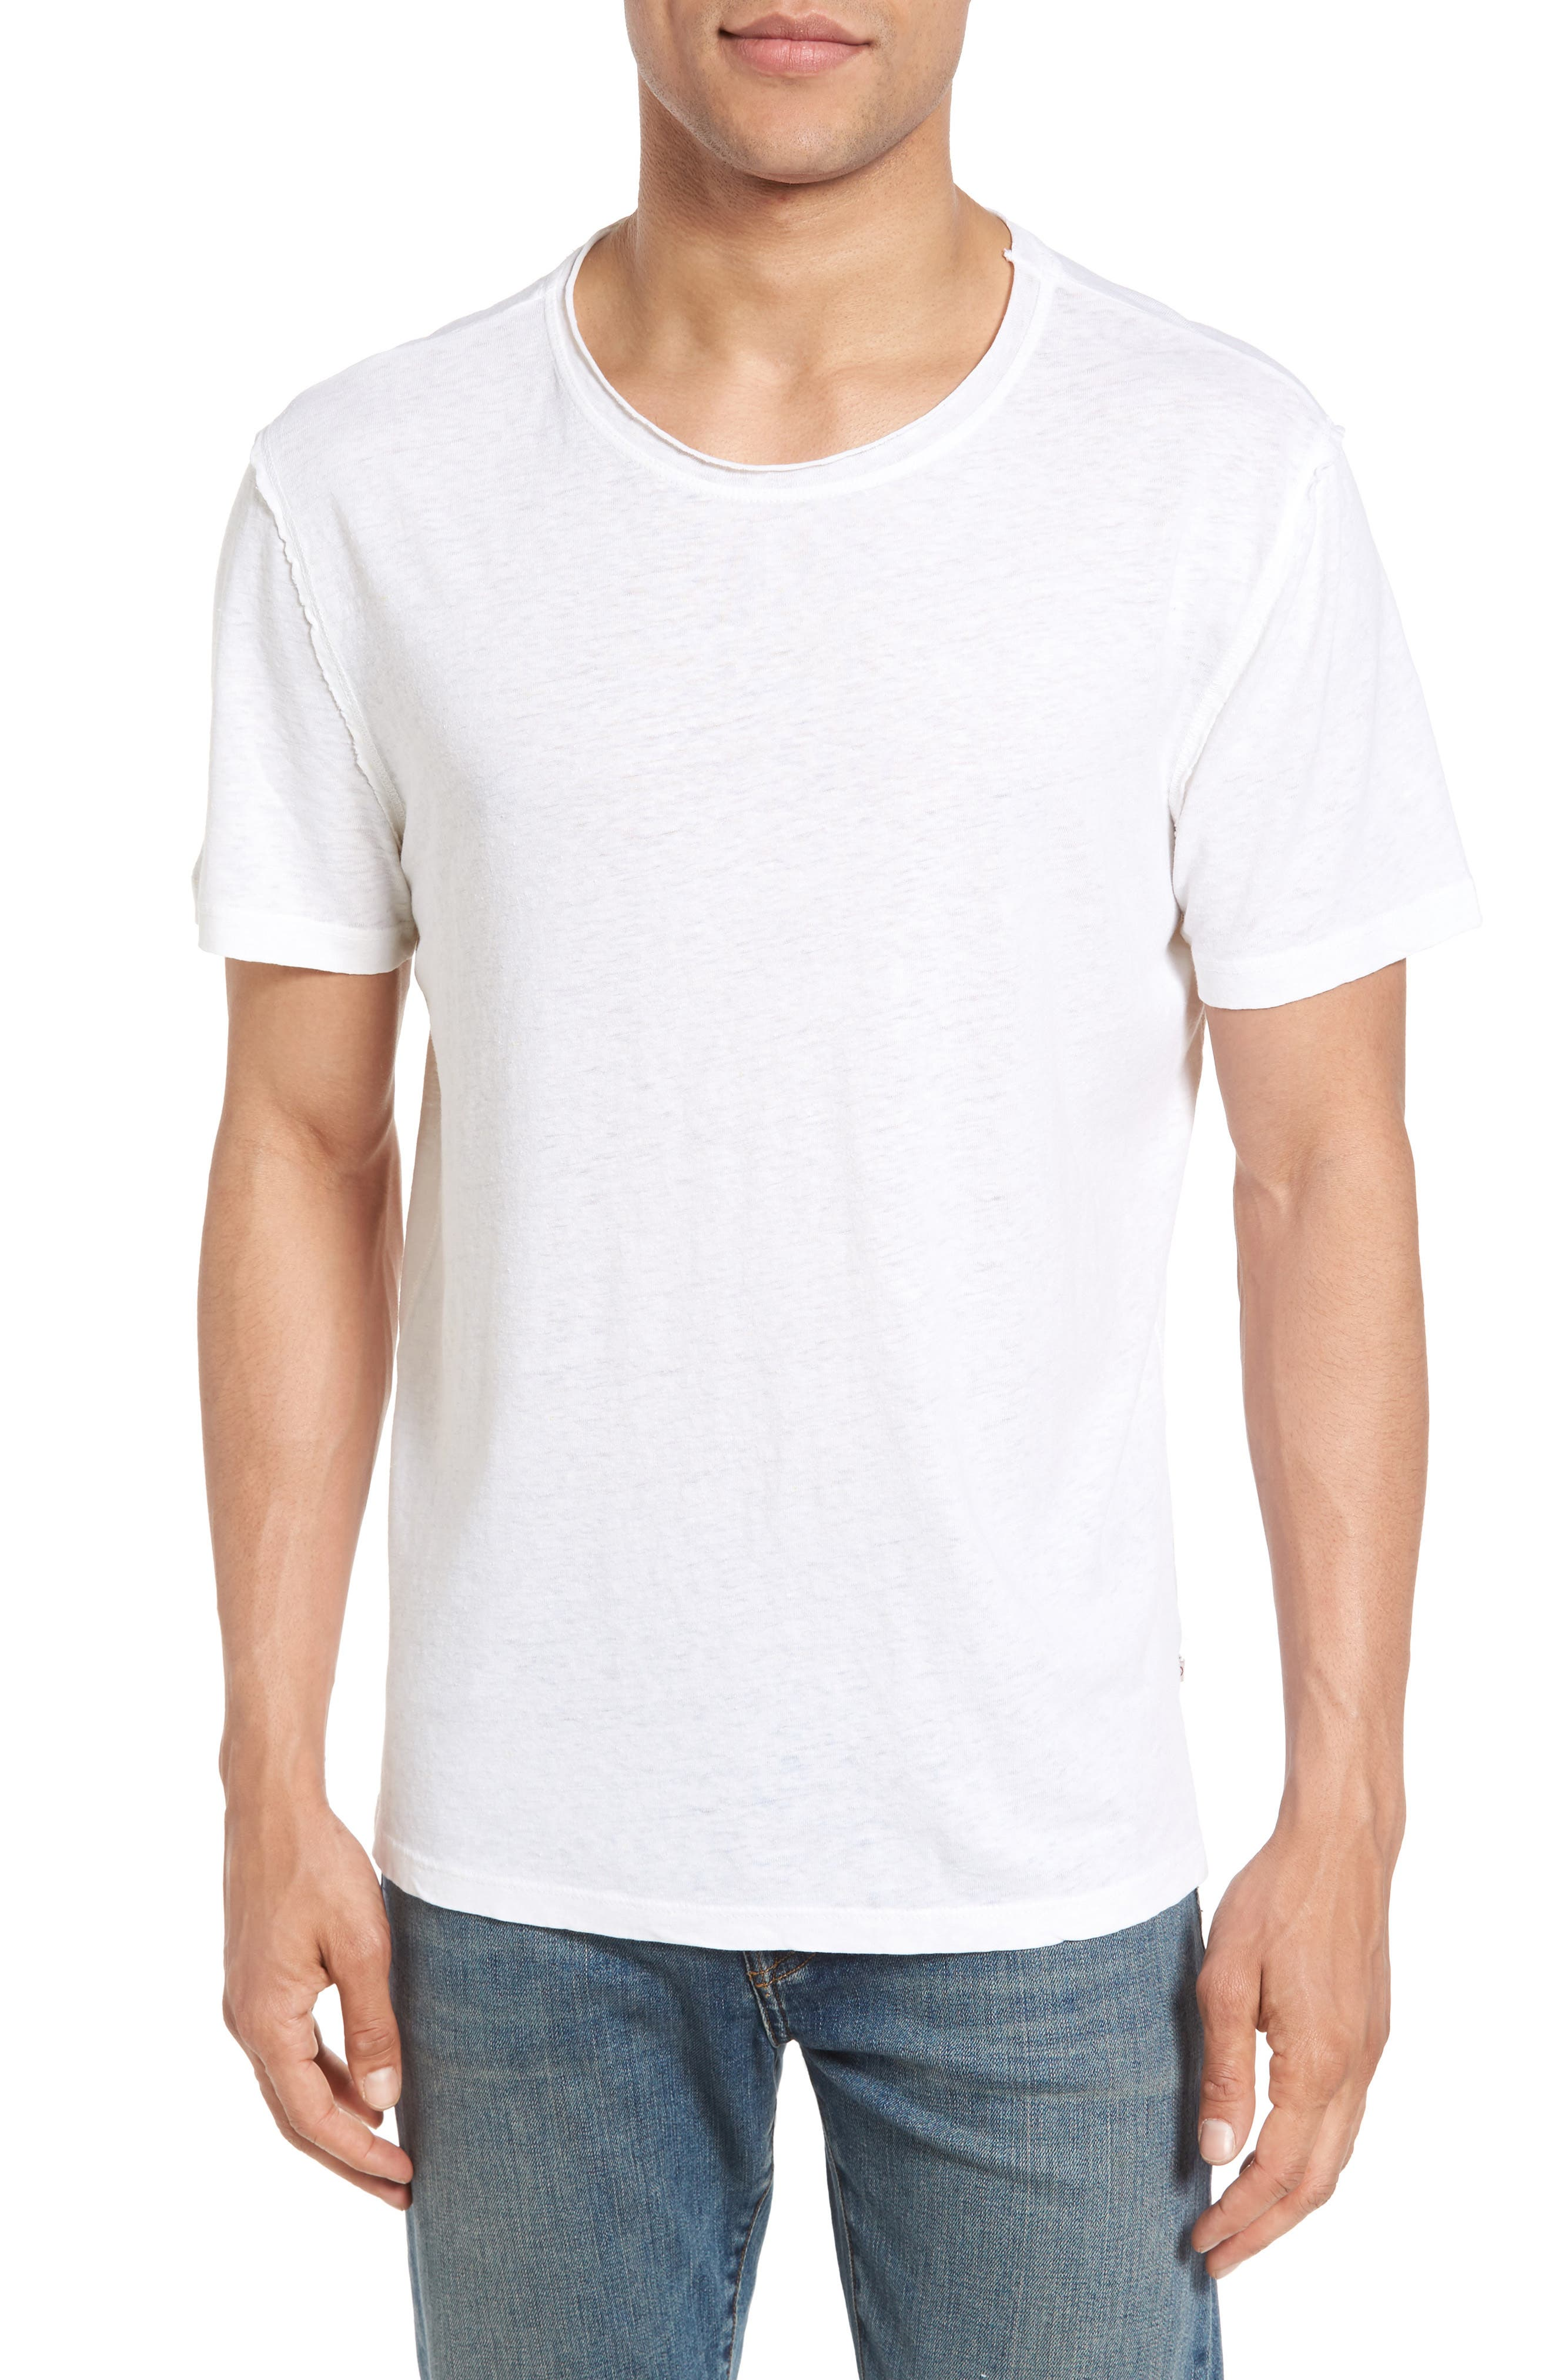 AG Theo Slim Fit Hemp & Organic Cotton Crewneck T-Shirt